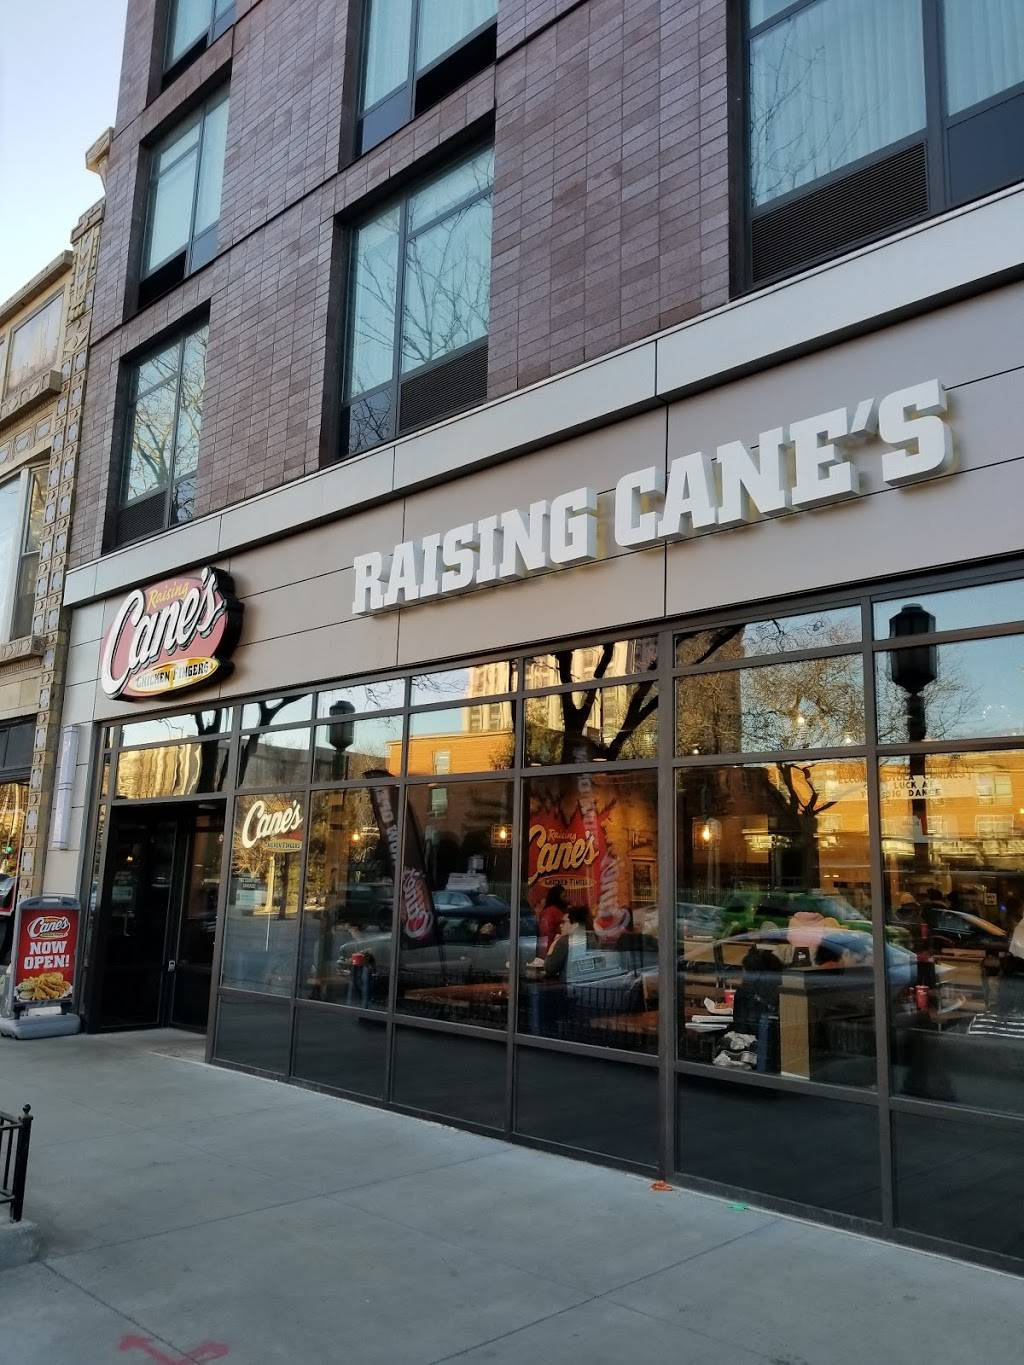 Raising Canes Chicken Fingers | meal takeaway | 6568 N Sheridan Rd, Chicago, IL 60626, USA | 7733819480 OR +1 773-381-9480